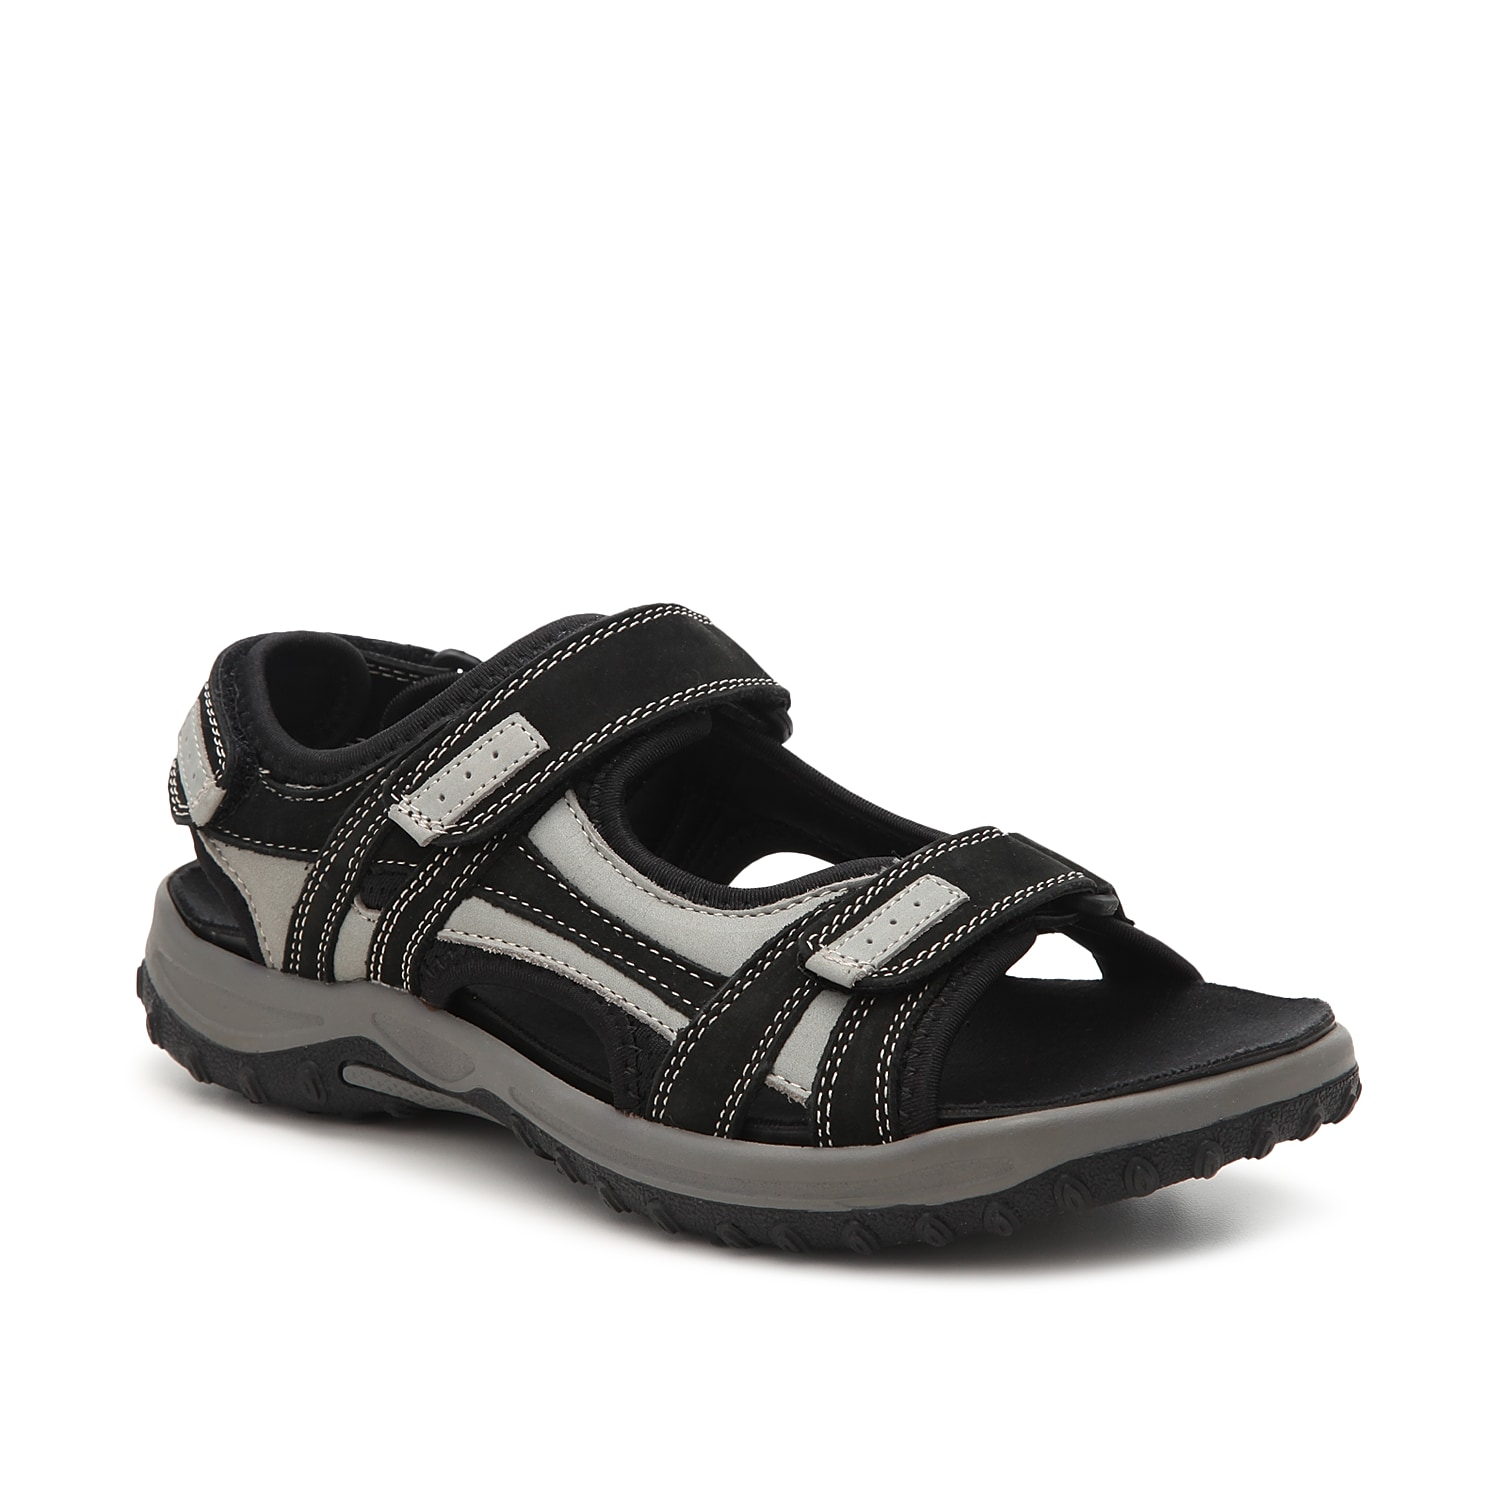 Whether you\\\'re hiking the trails or walking in wet environments, the Warren from Drew is for you. This sport sandal features a removable insole for custom comfort and a rubber traction sole to ensure slip-free steps.